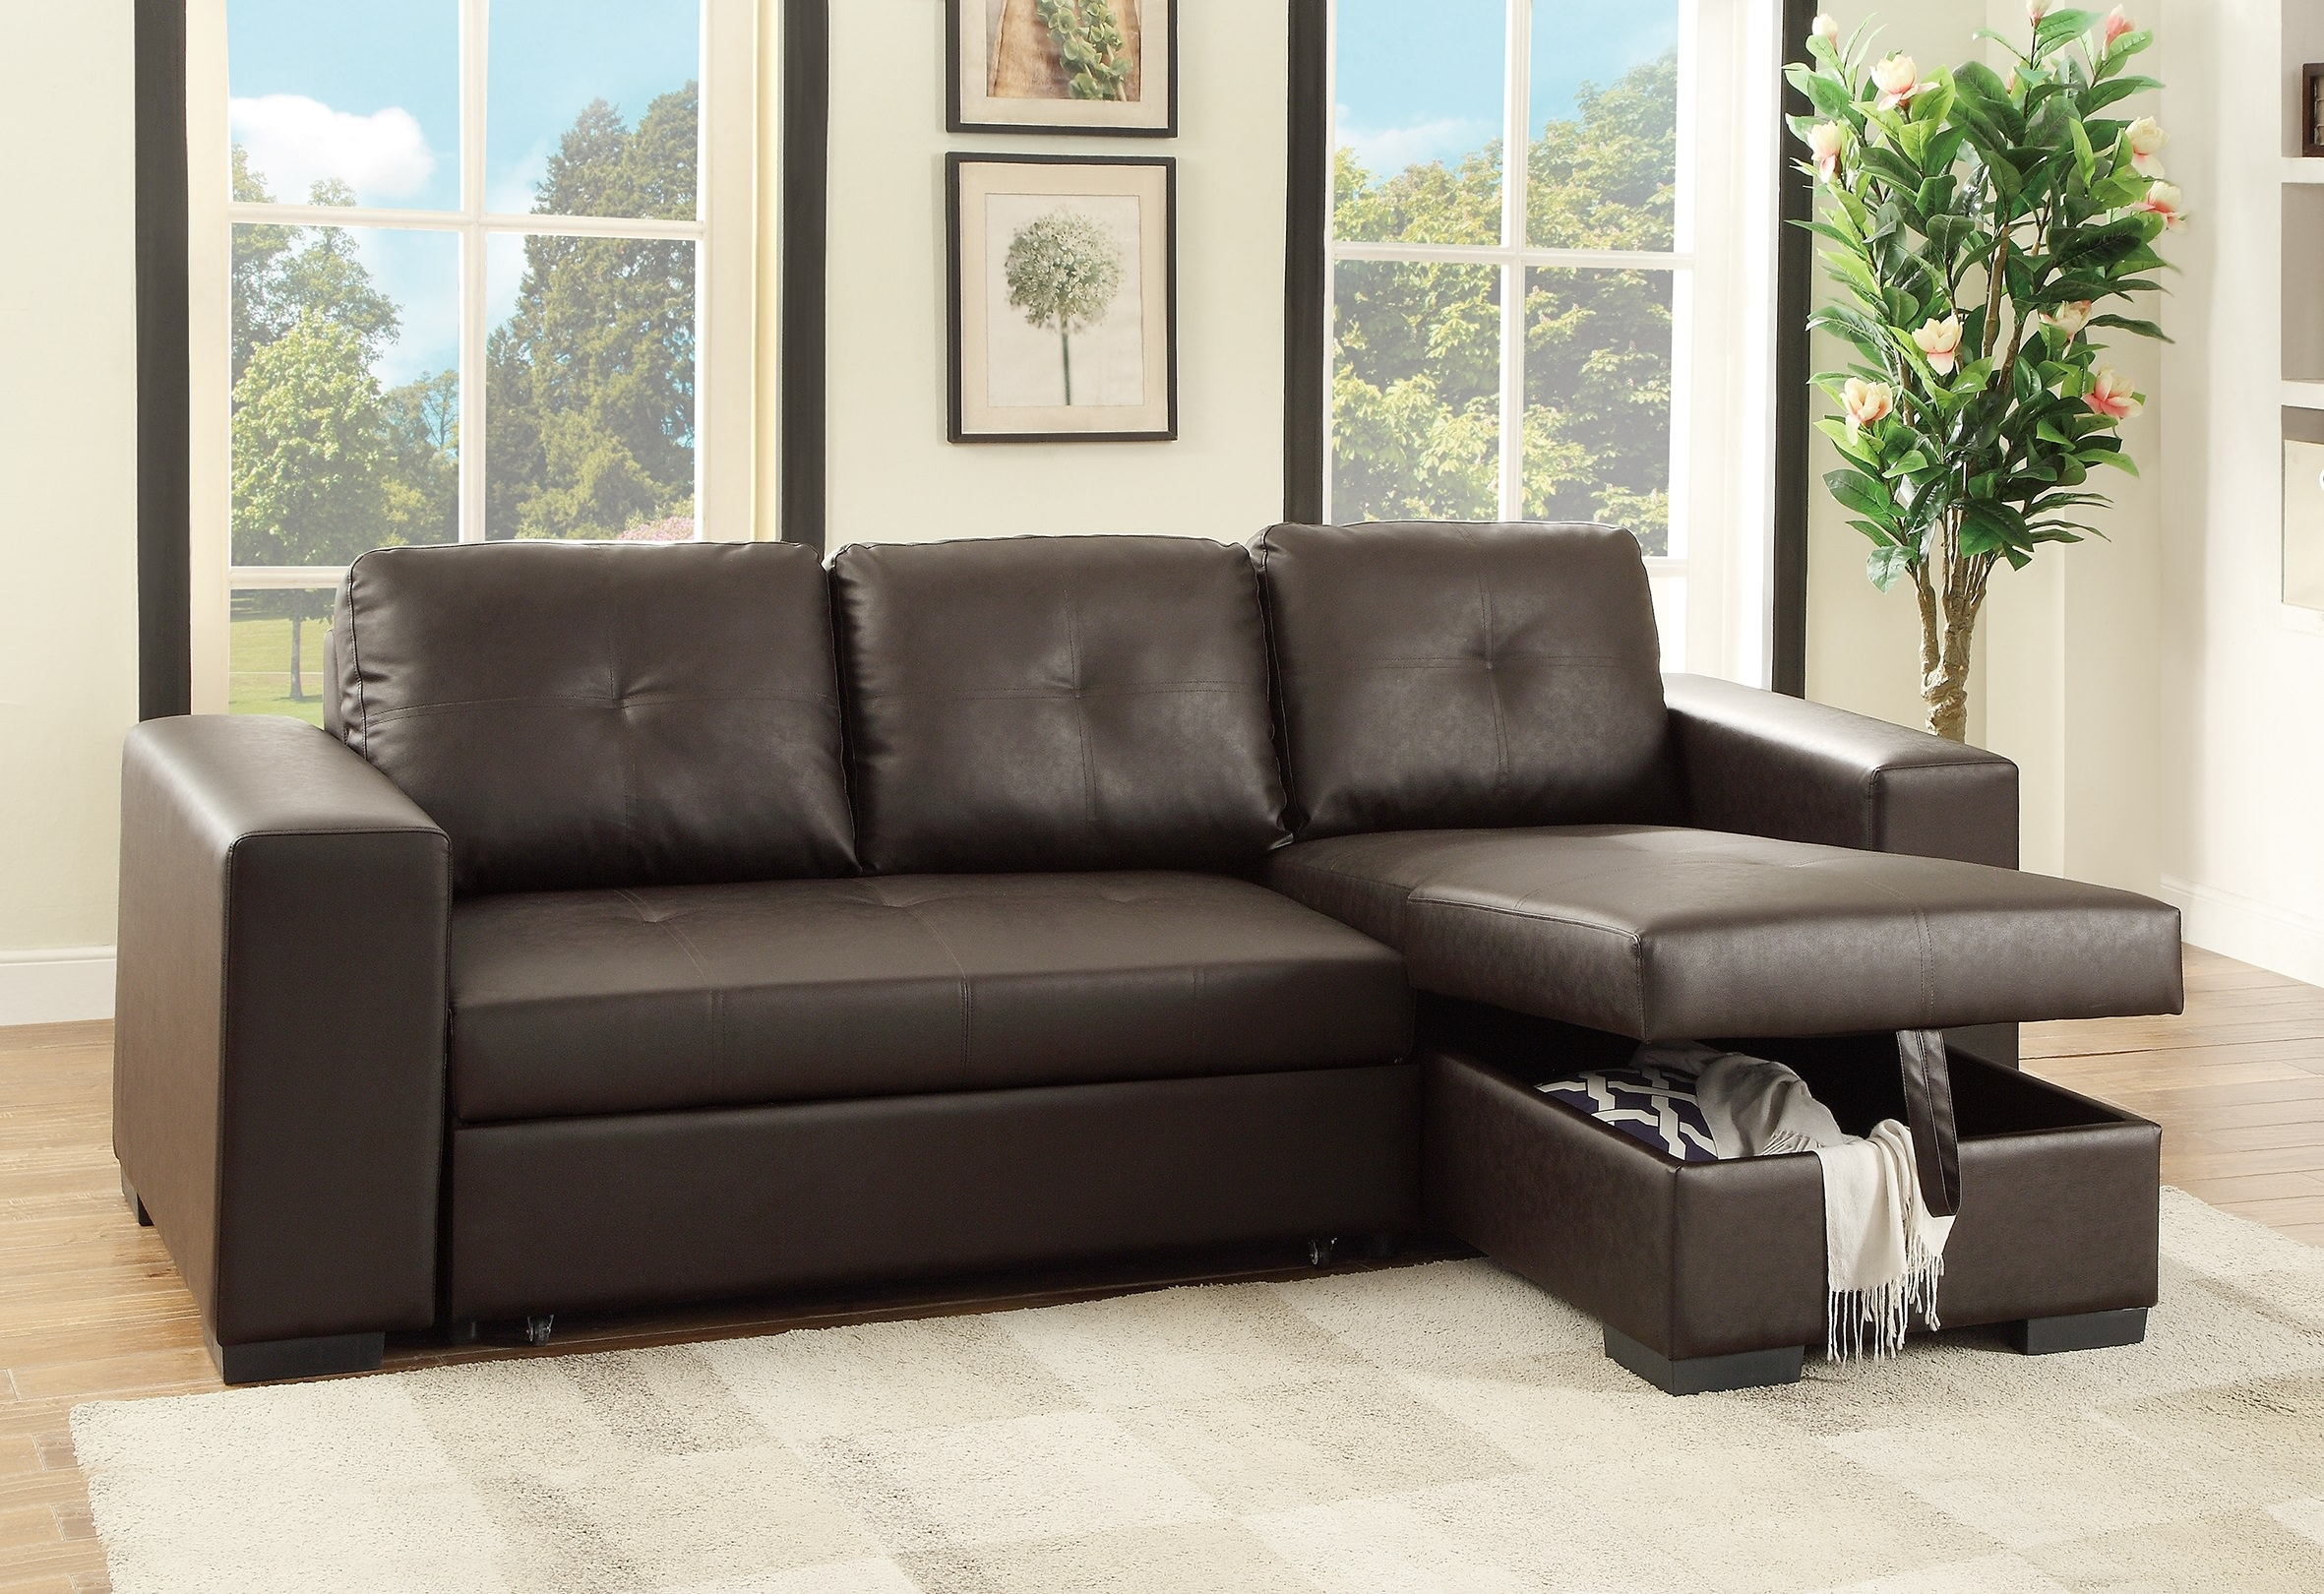 F6930 Espresso Convertible Sectional Sofa Poundex Within Convertible Sectional Sofas (#7 of 12)